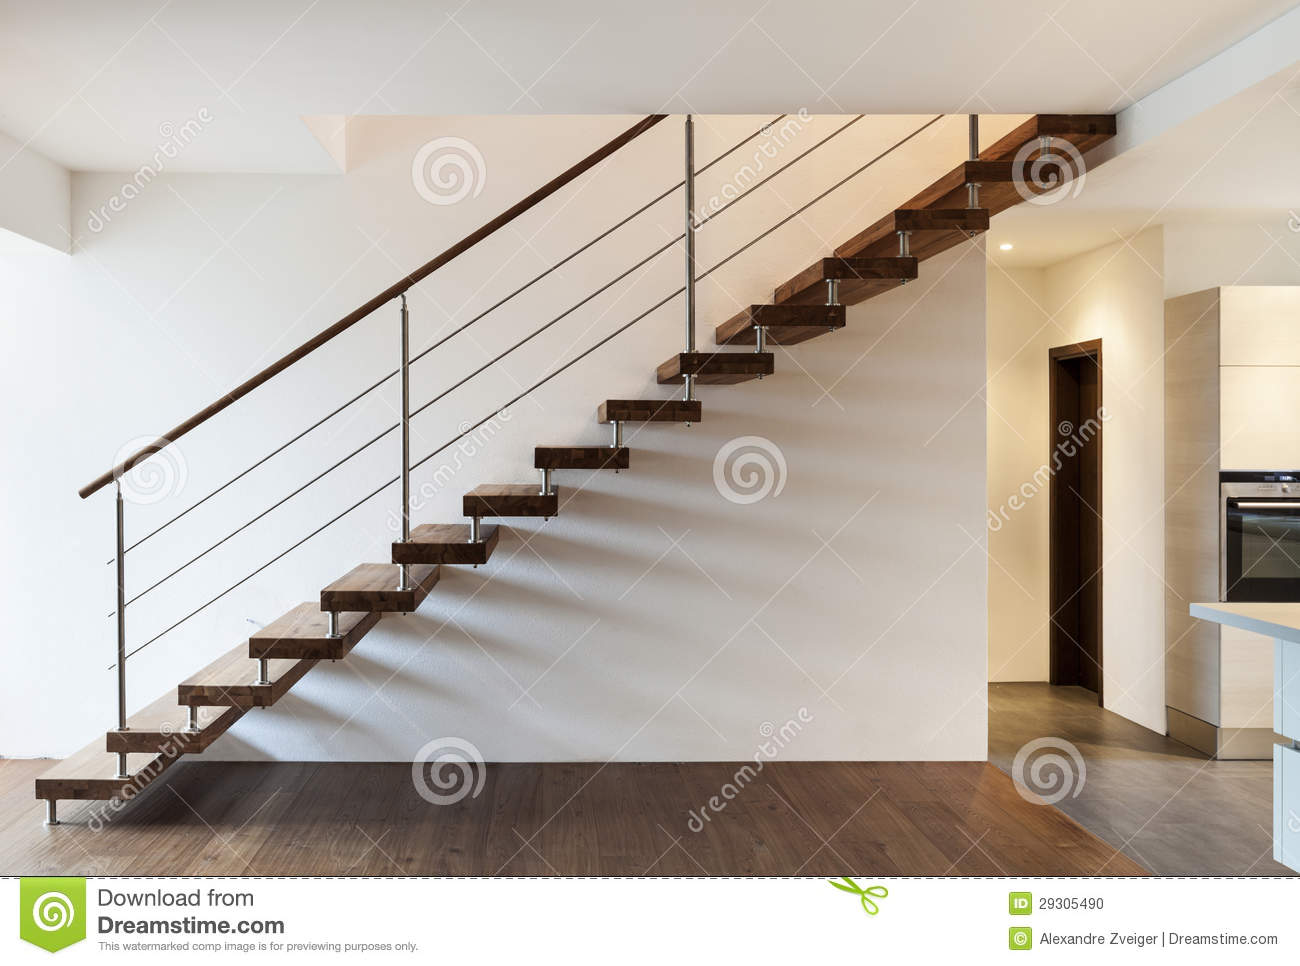 Escalier int rieur photo stock image du vide acier for Photos d escaliers interieurs